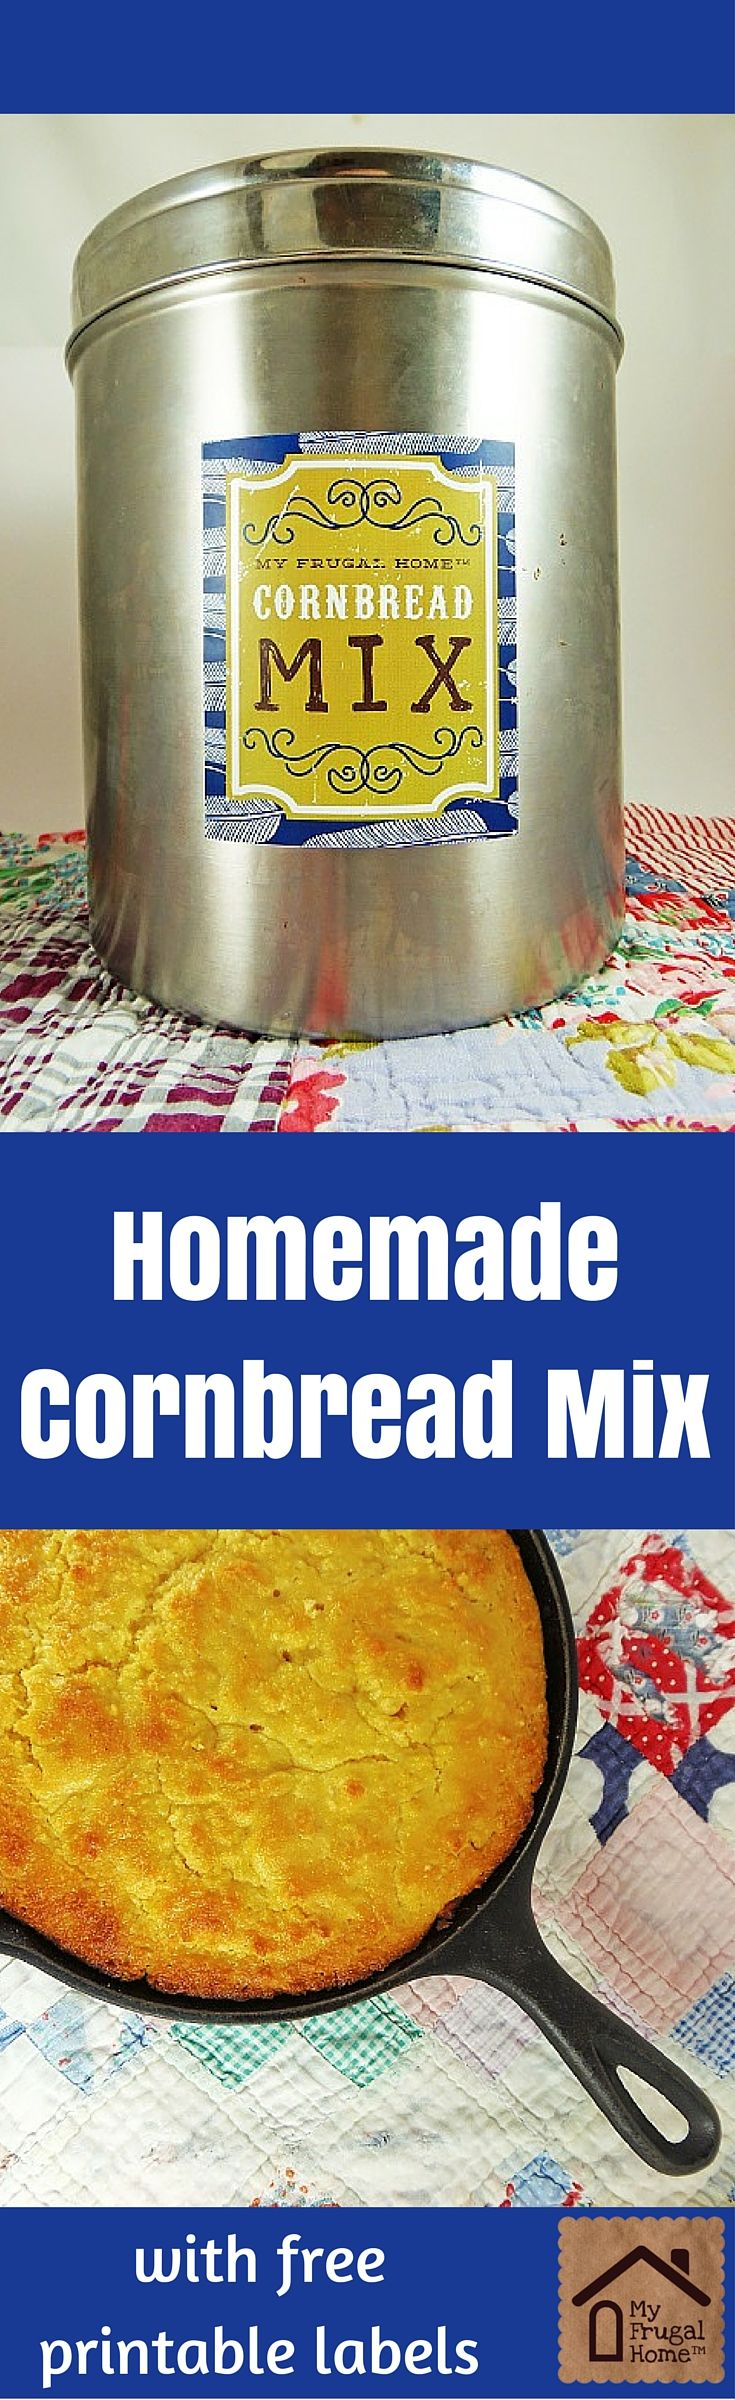 Homemade Cornbread Mix - with free, printable labels